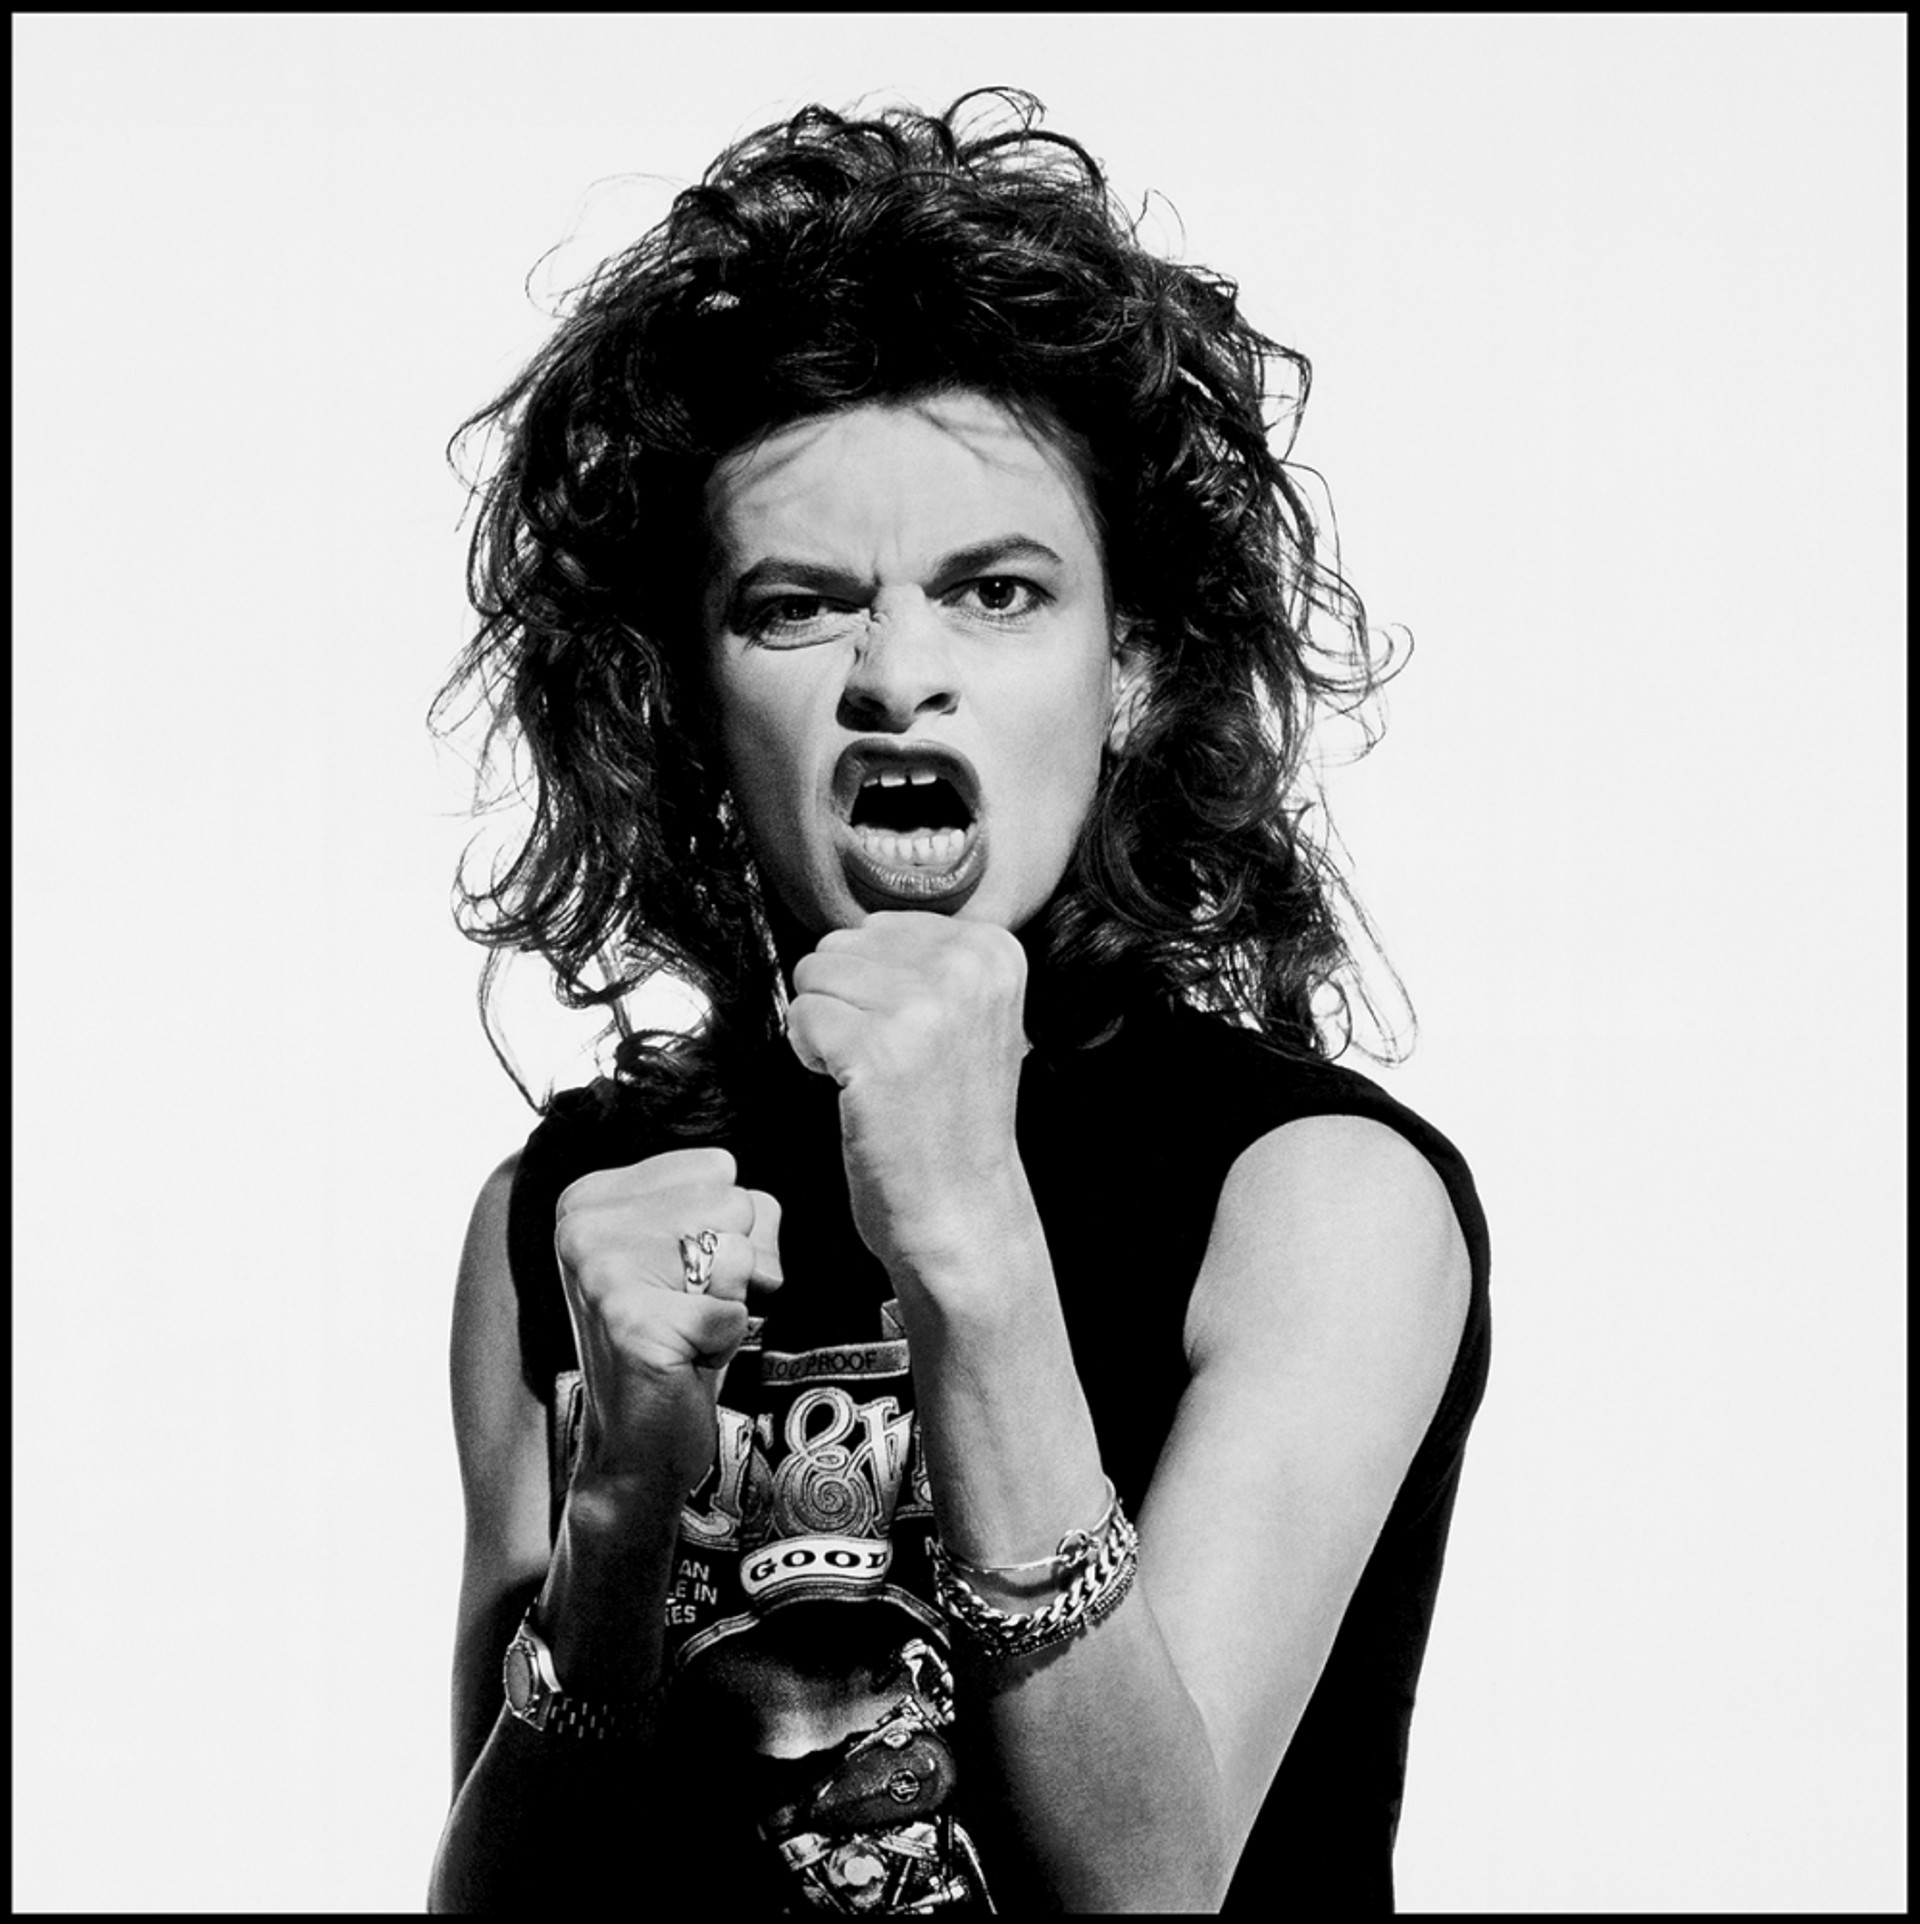 88161 Sandra Bernhard Hands Up BW by Timothy White